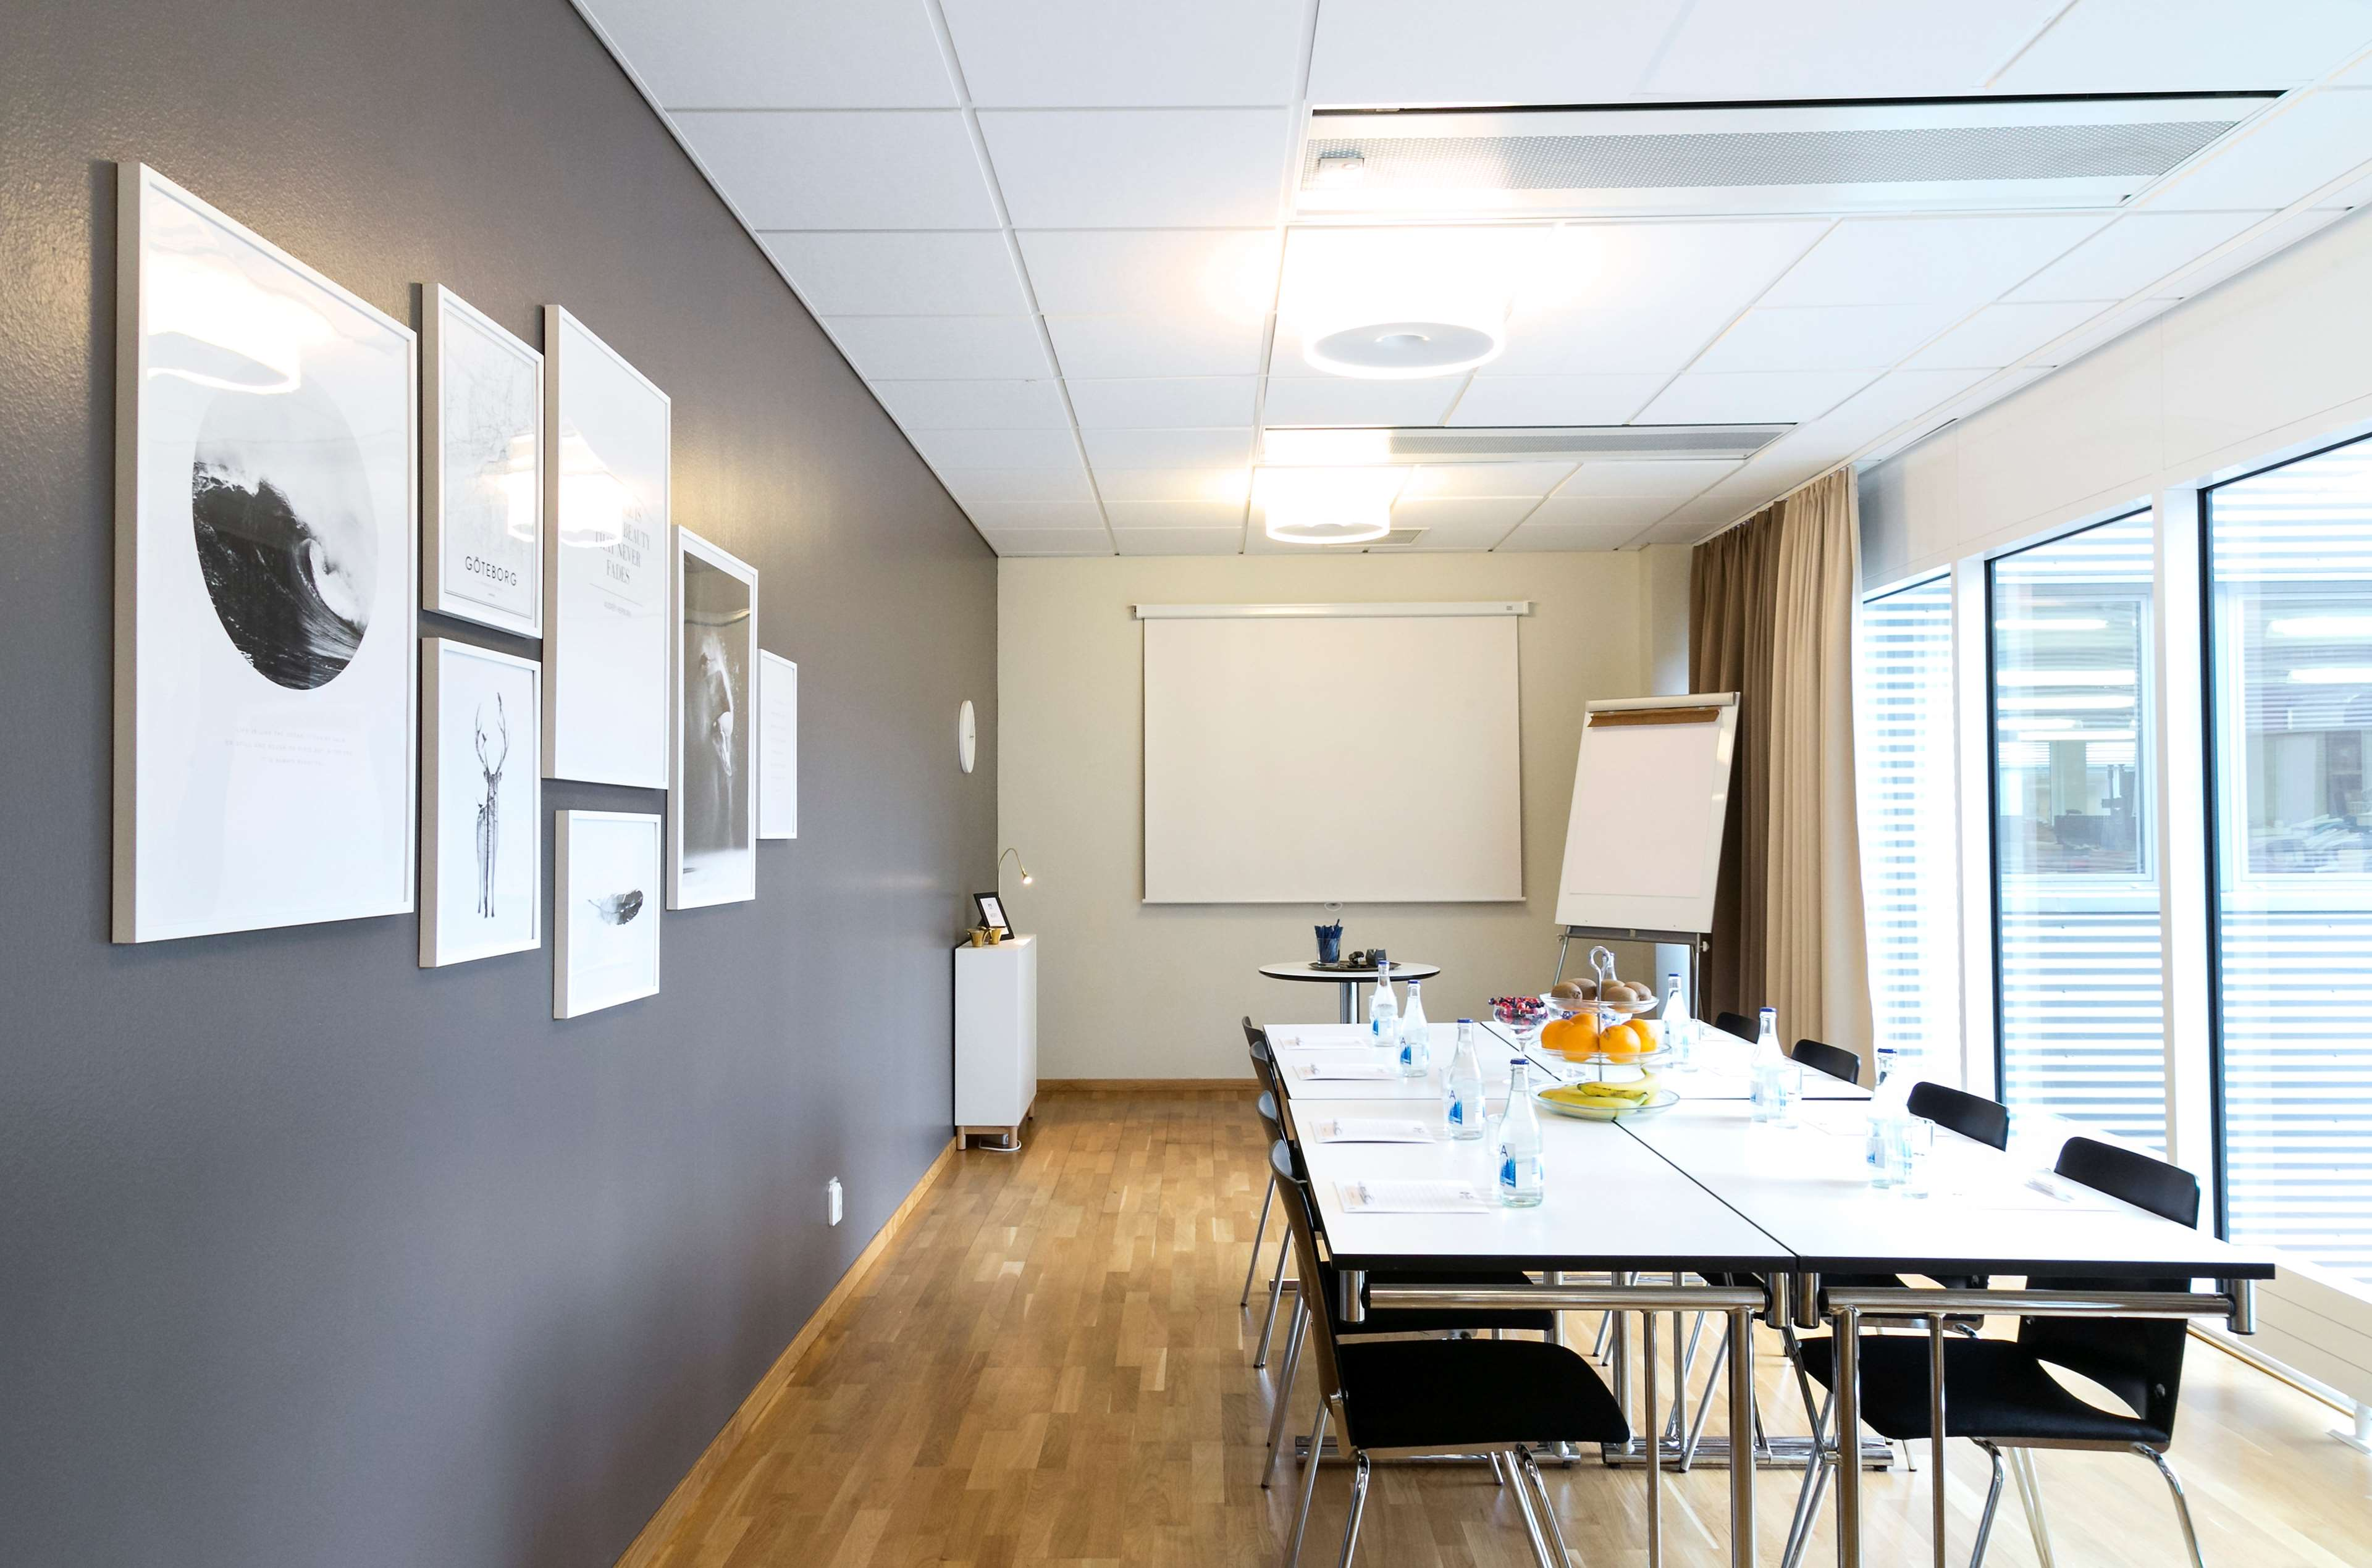 Meeting Room Services